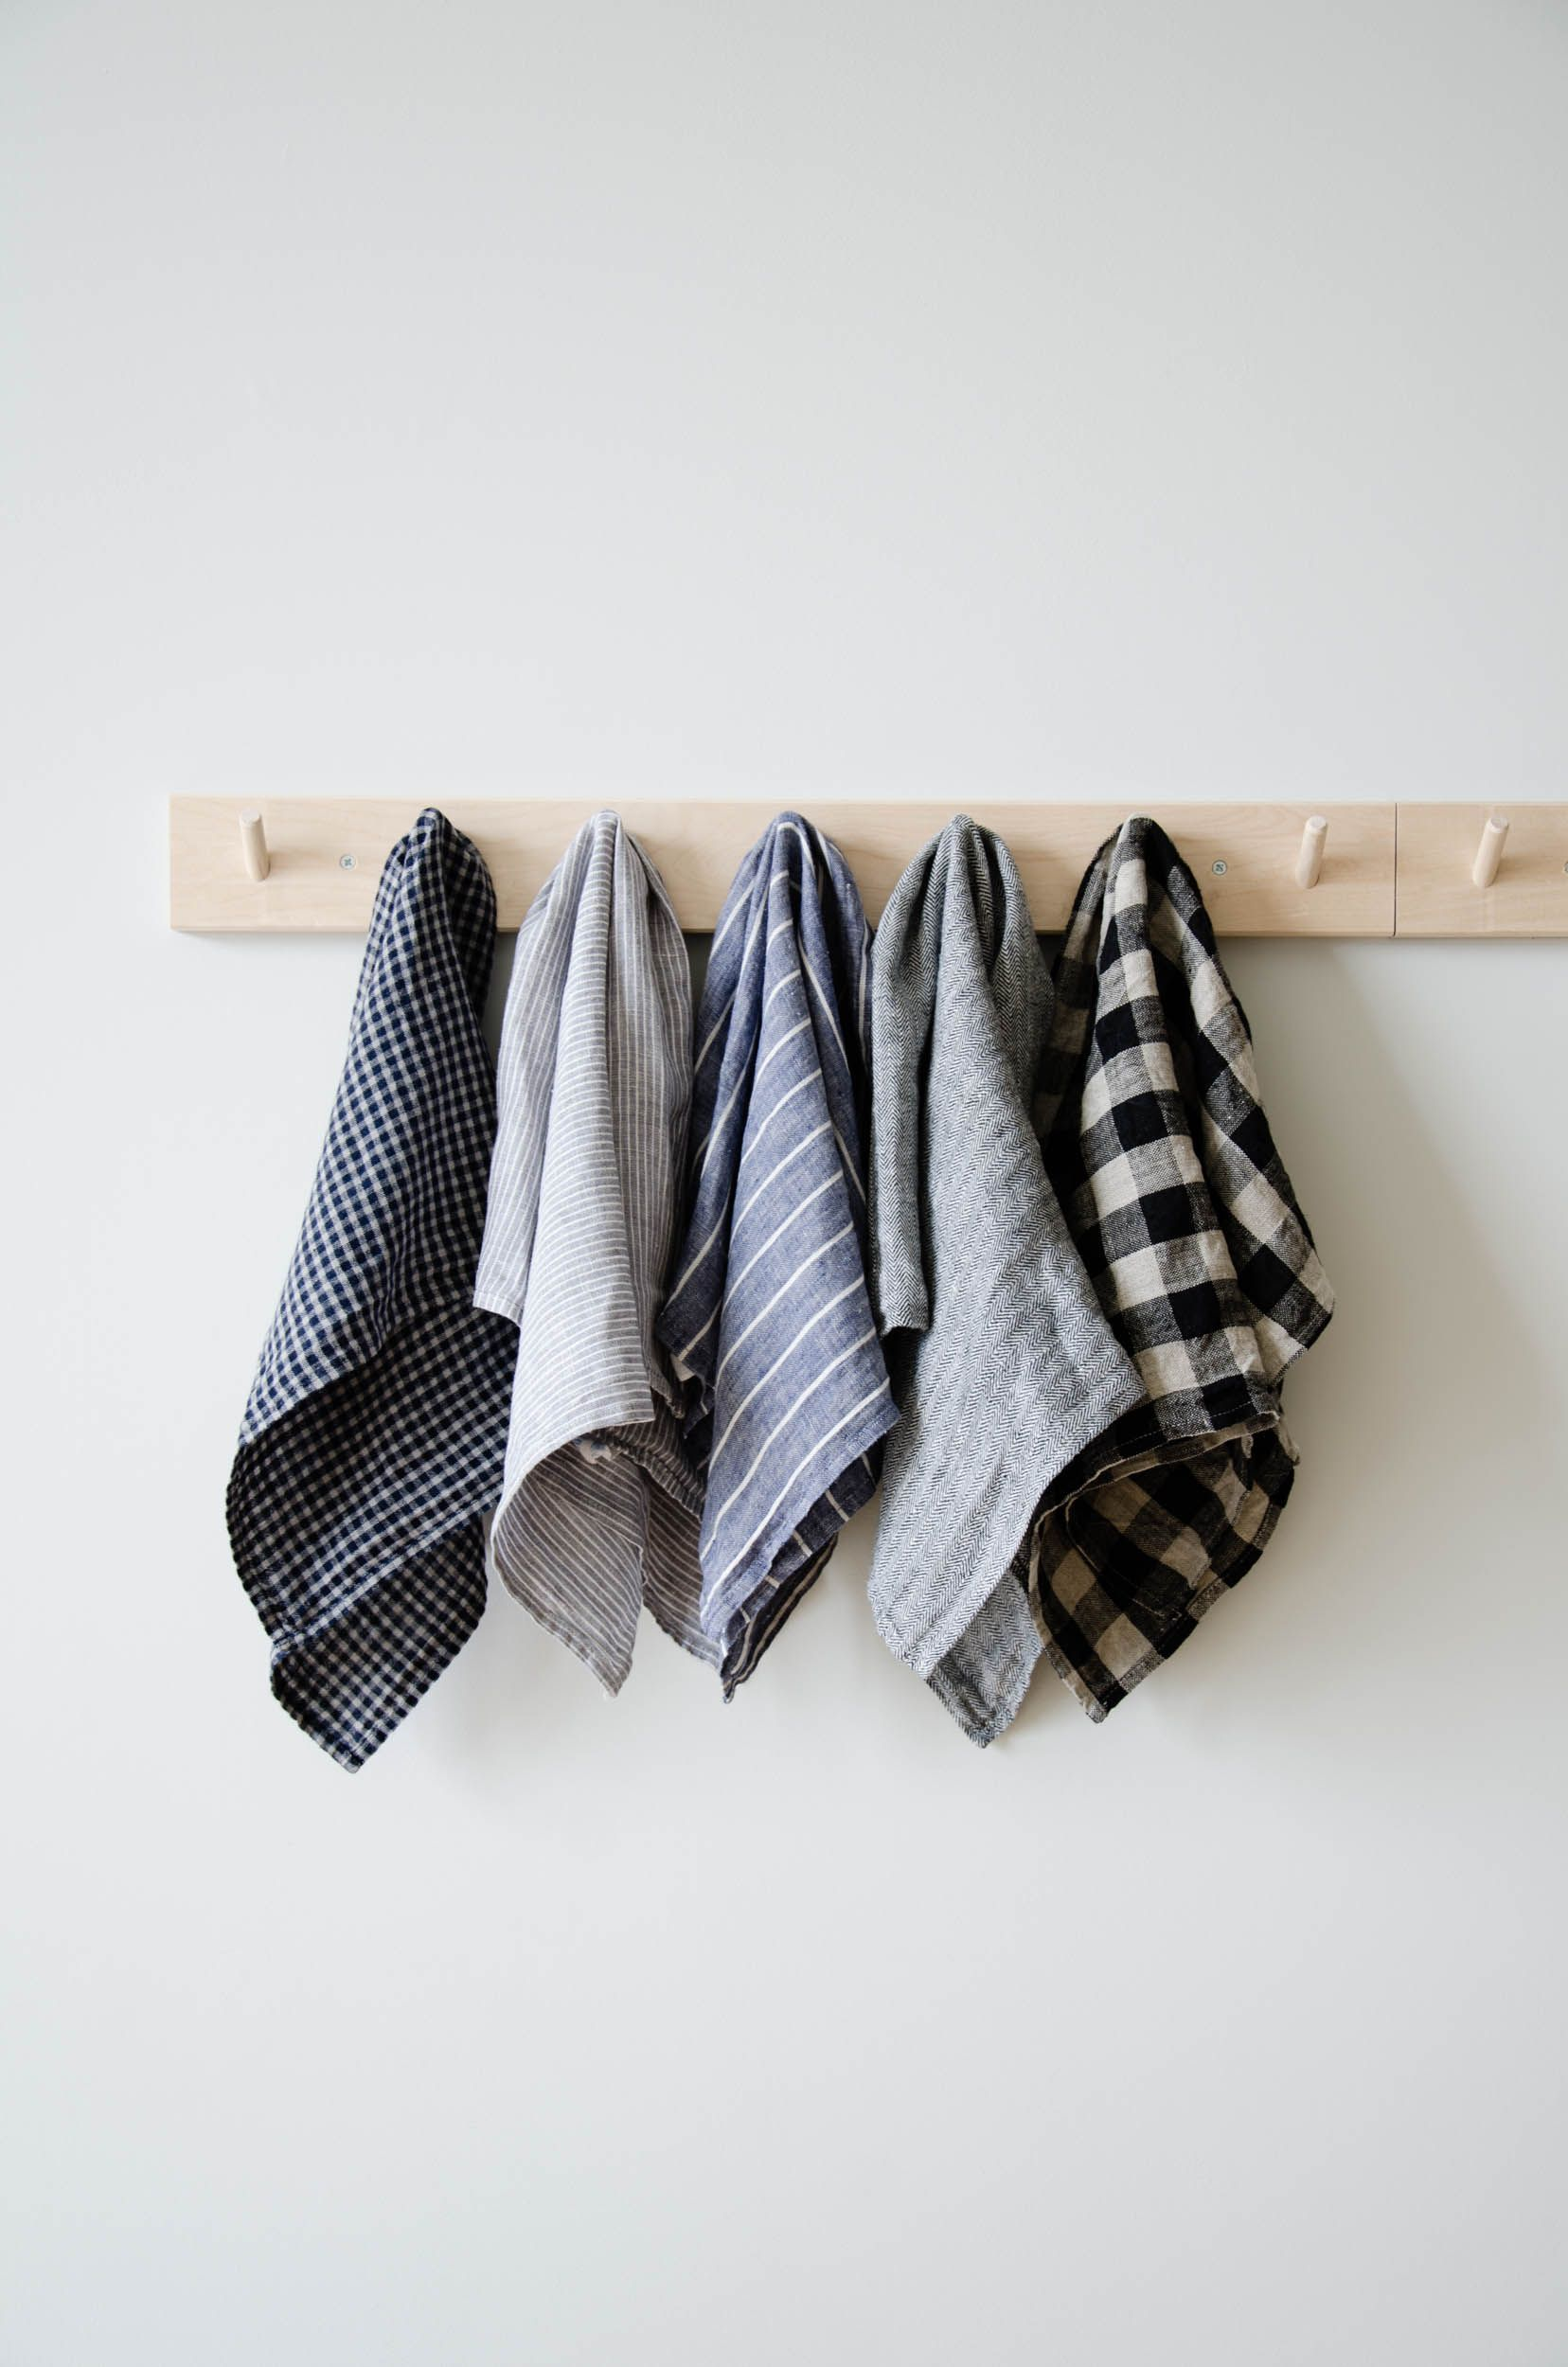 Linen kitchen tea towels | Reusable cloth napkins | Zero waste ...